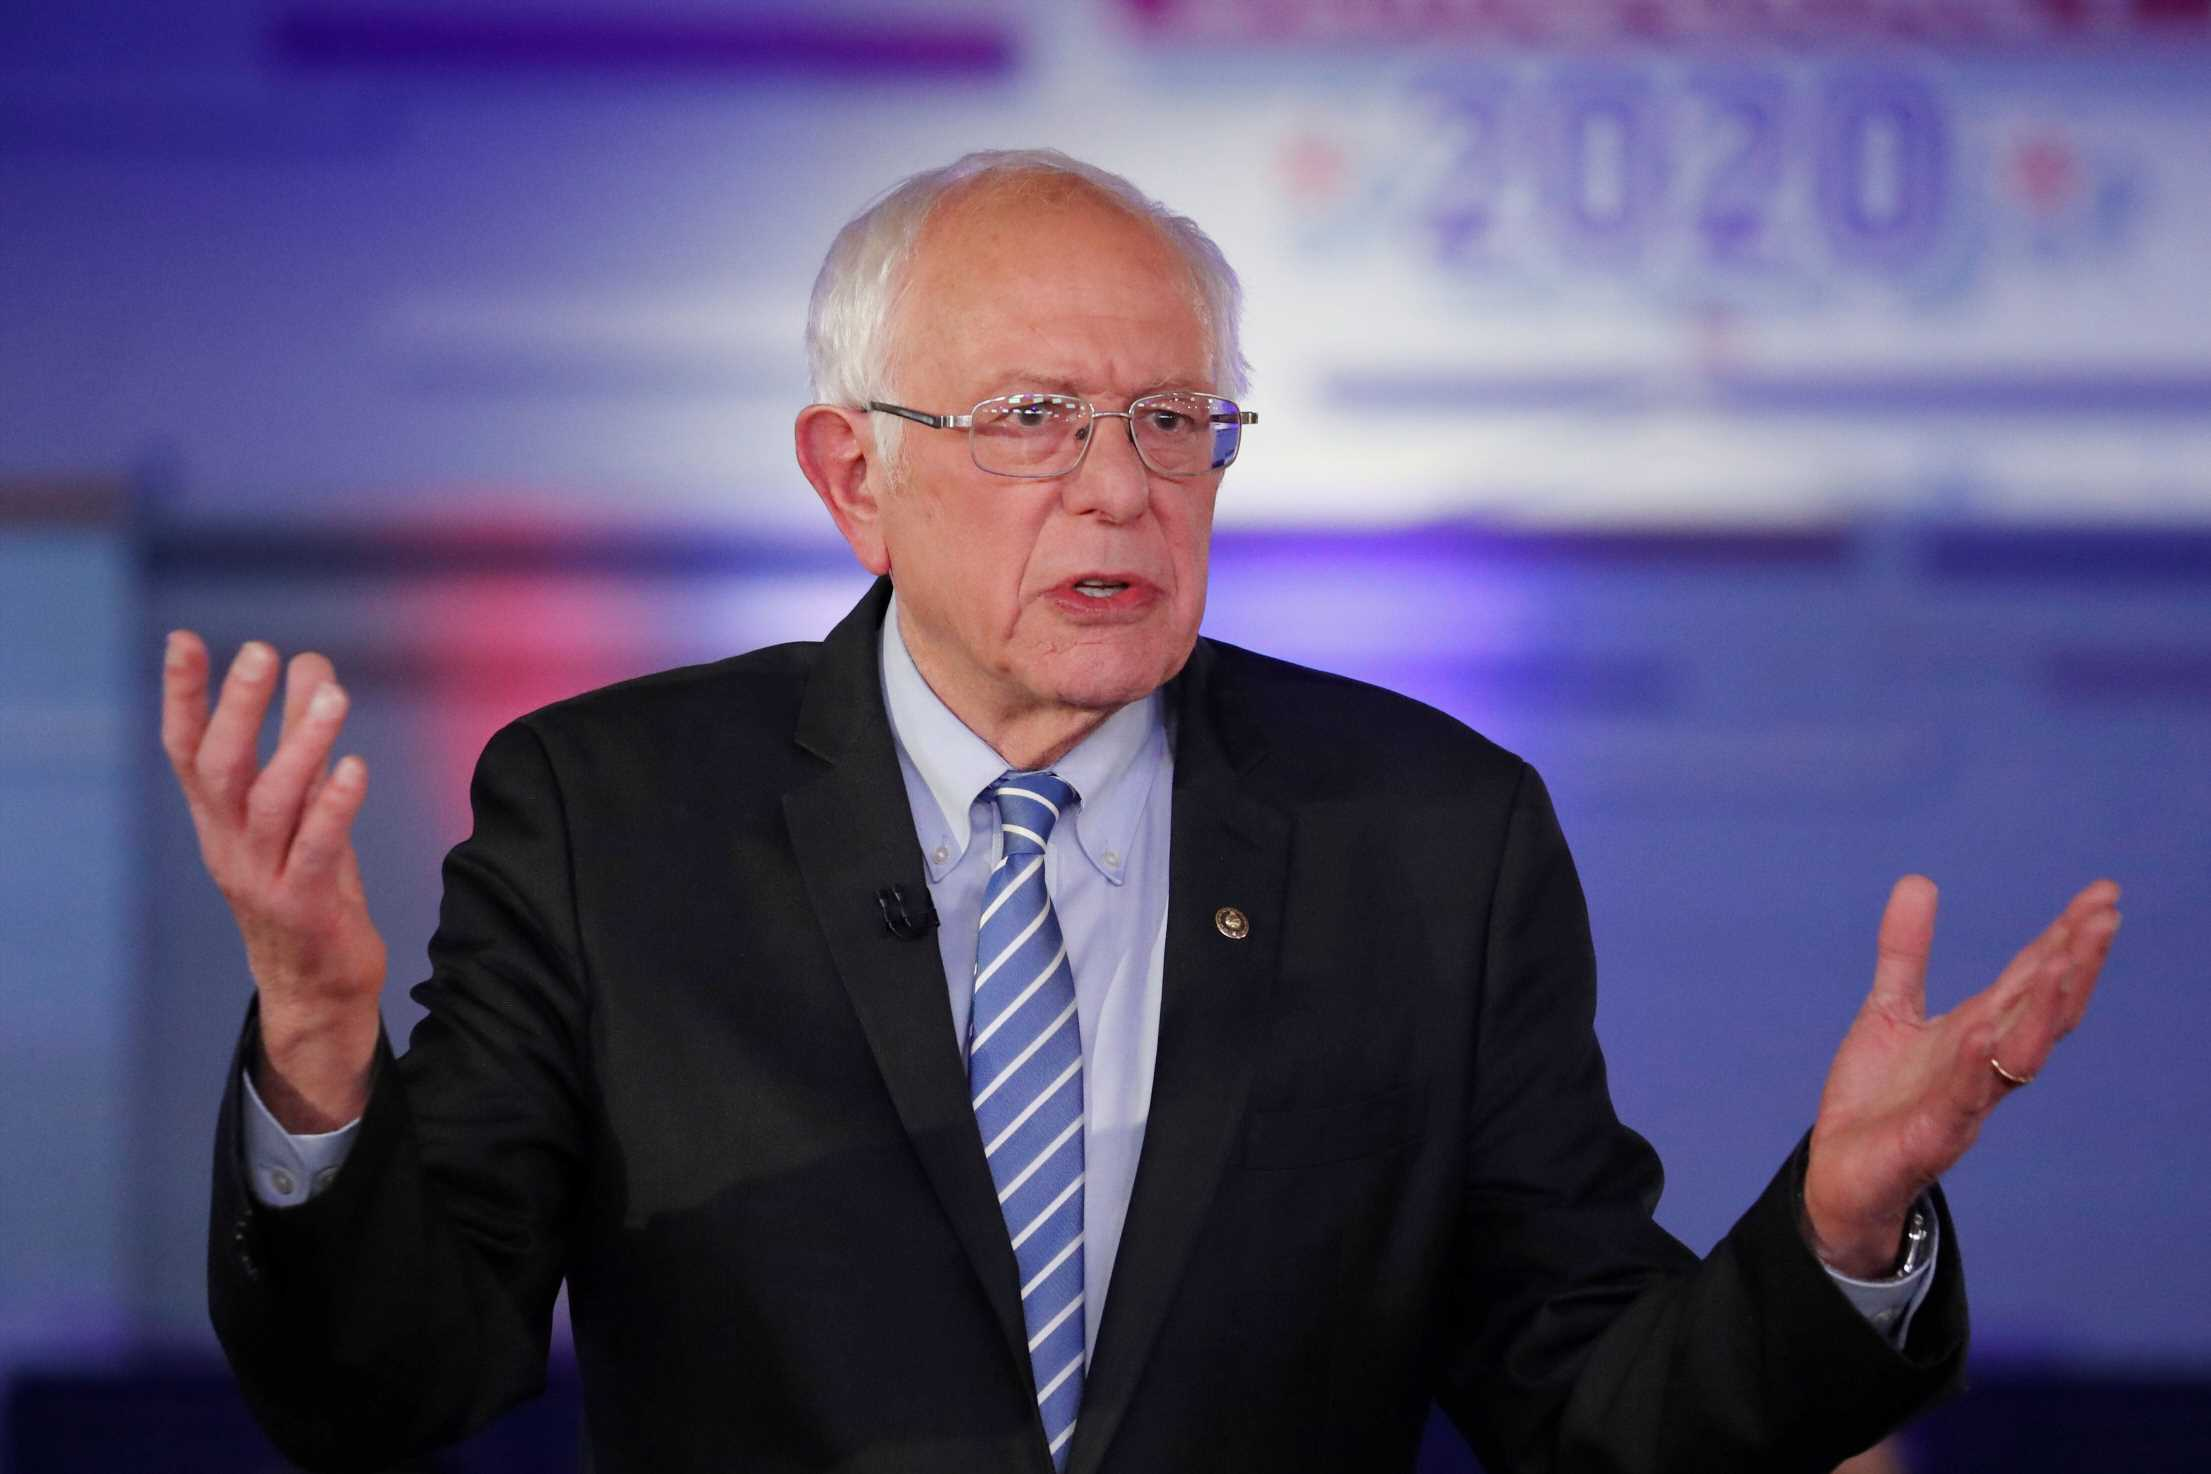 Without Hillary Clinton In The Race, Bernie Sanders' Rural Edge Disappeared